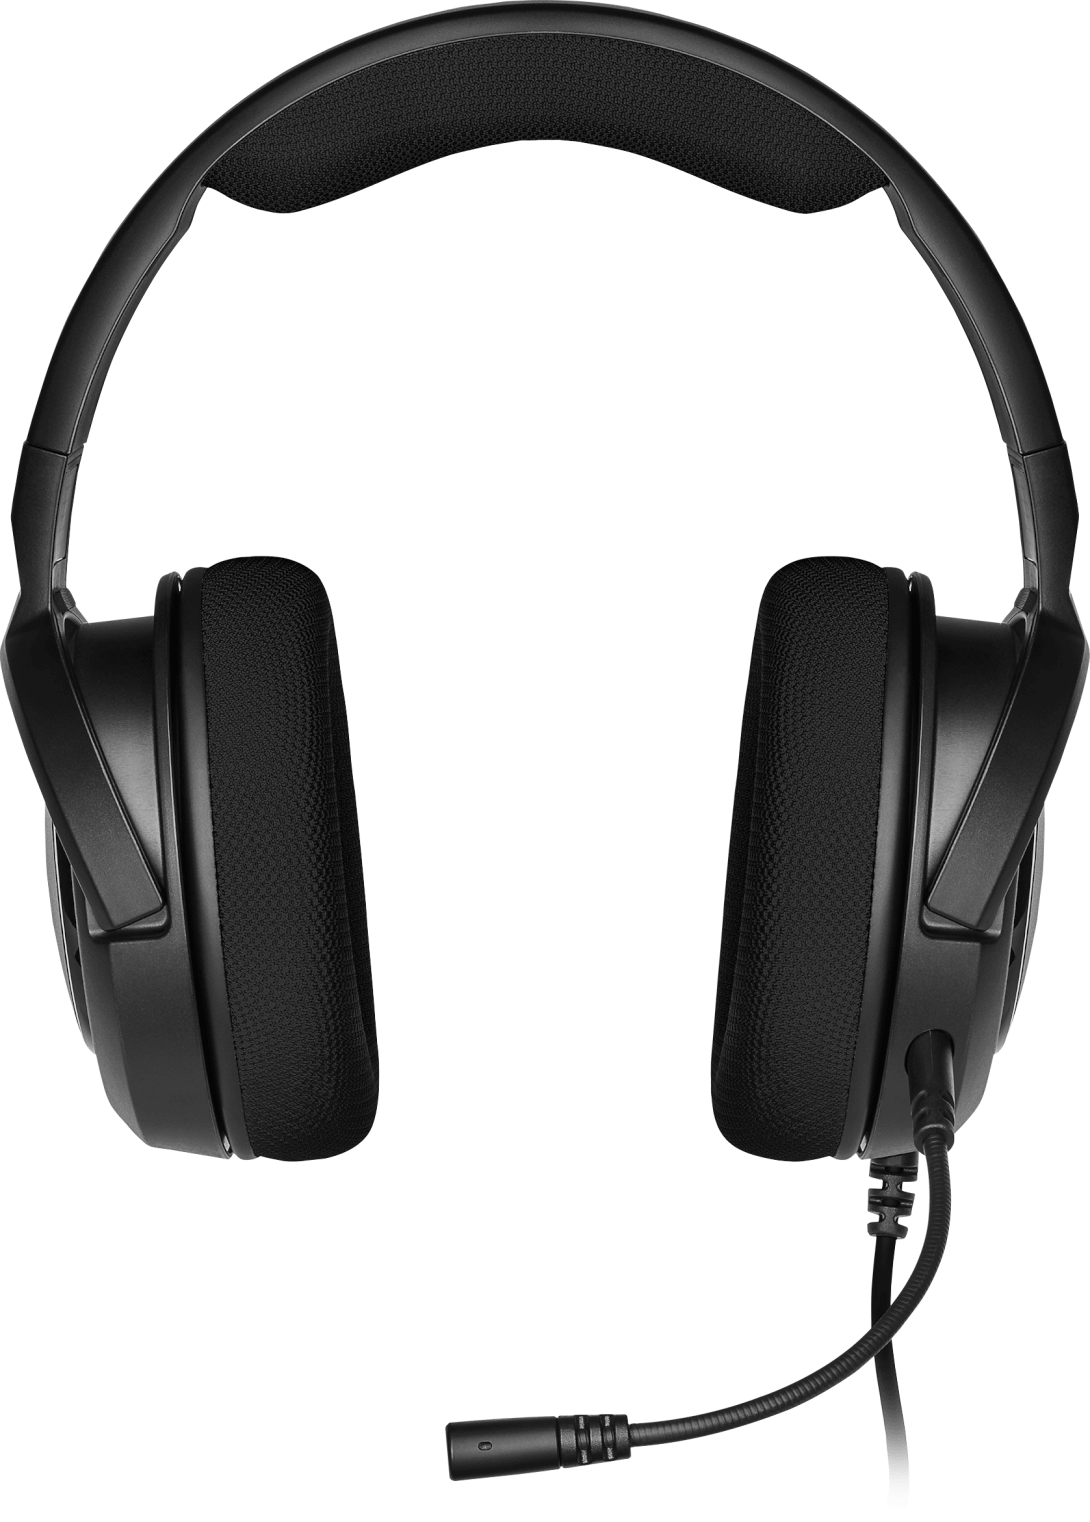 HS45 GAMING HEADSET - BIGGER DRIVERS, BETTER SOUND